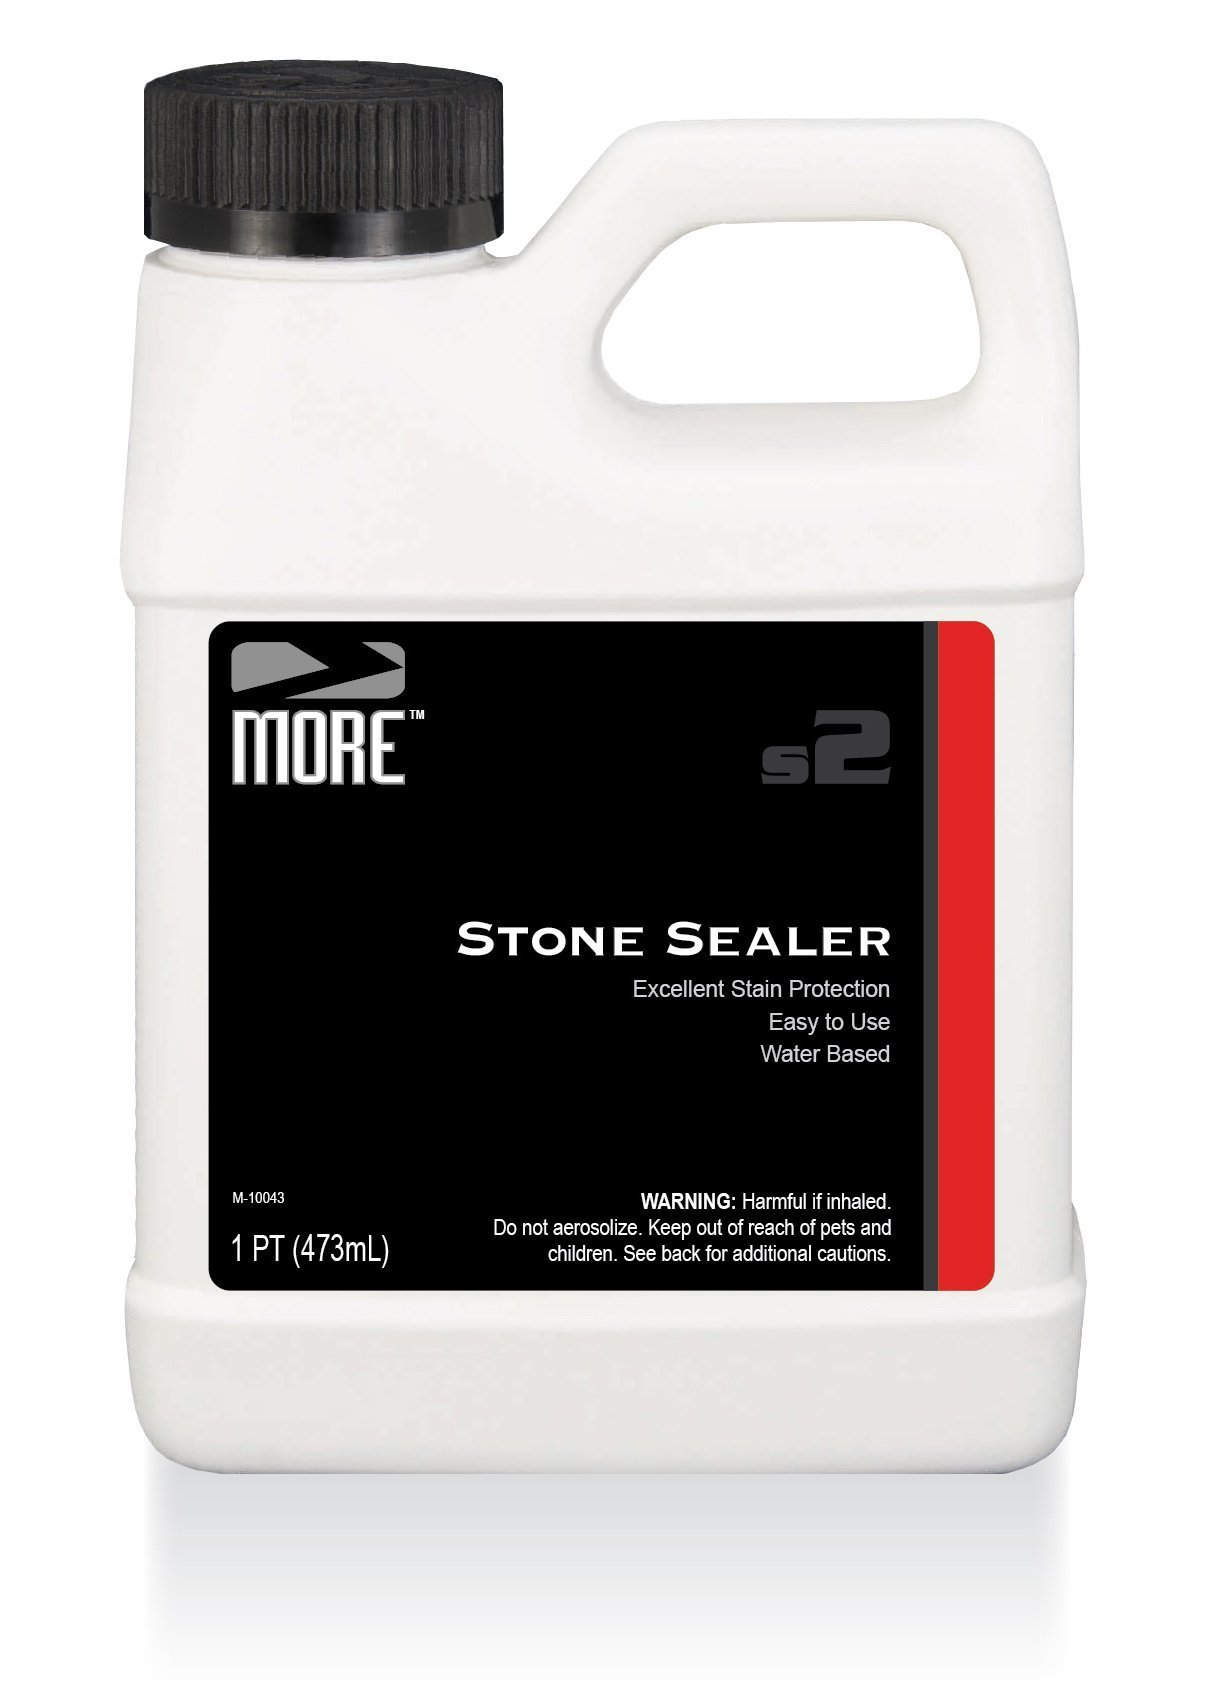 MORE Stone Sealer - Gentle, Water Based Formula - Protection for Natural Stone and Tile Surfaces [Pint / 16 oz.] by MORE Surface Care